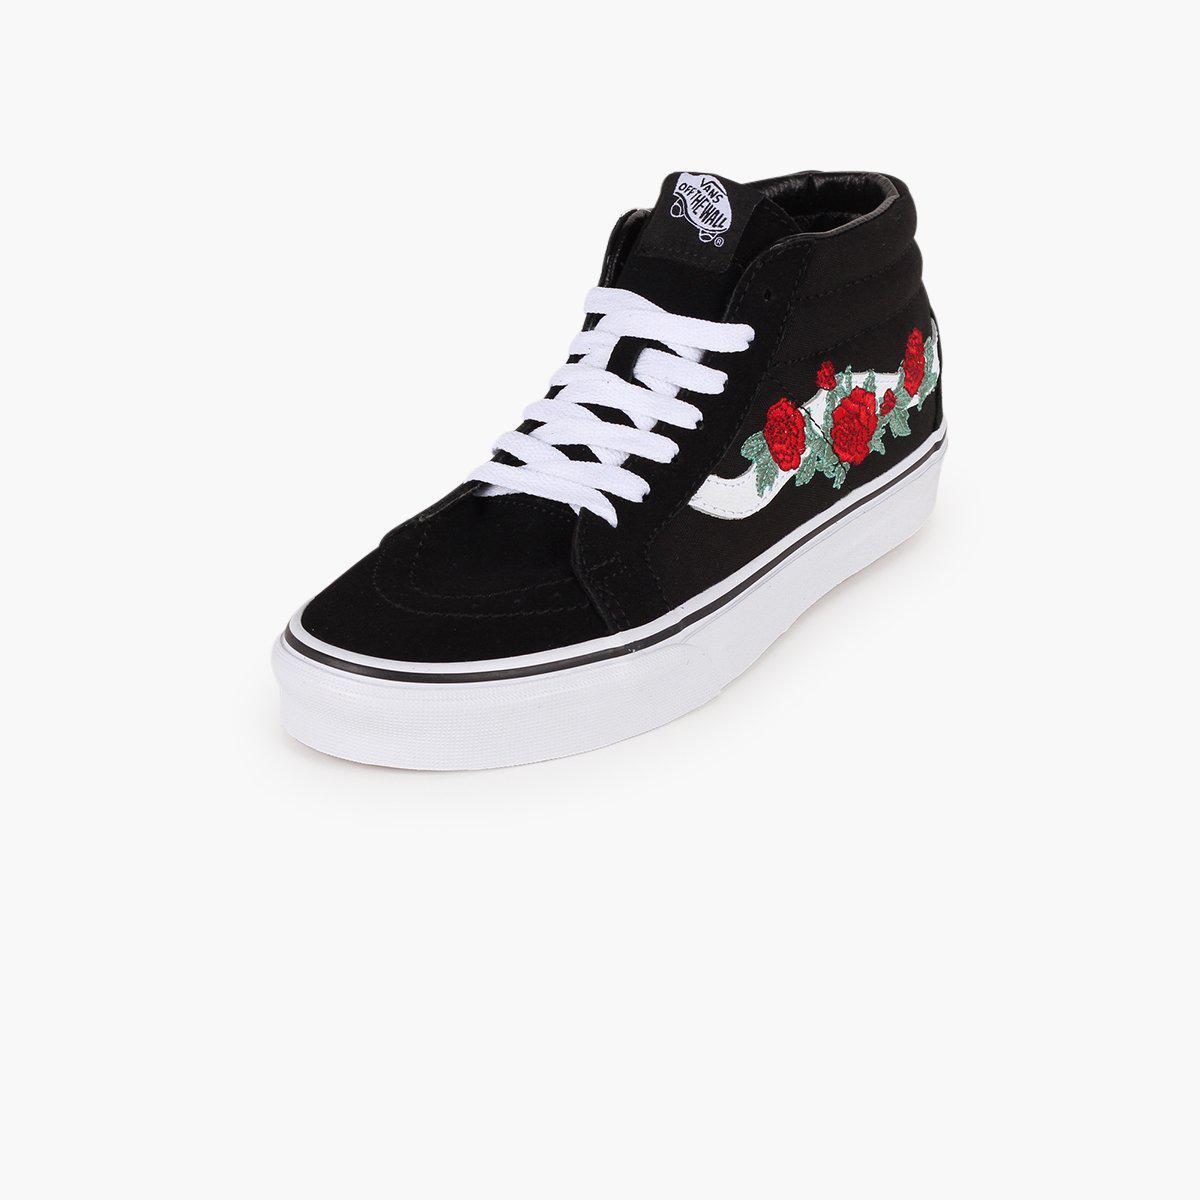 a3e6226b37334b Lyst - Vans Sk8-mid Reissue Rose Thorns in Black